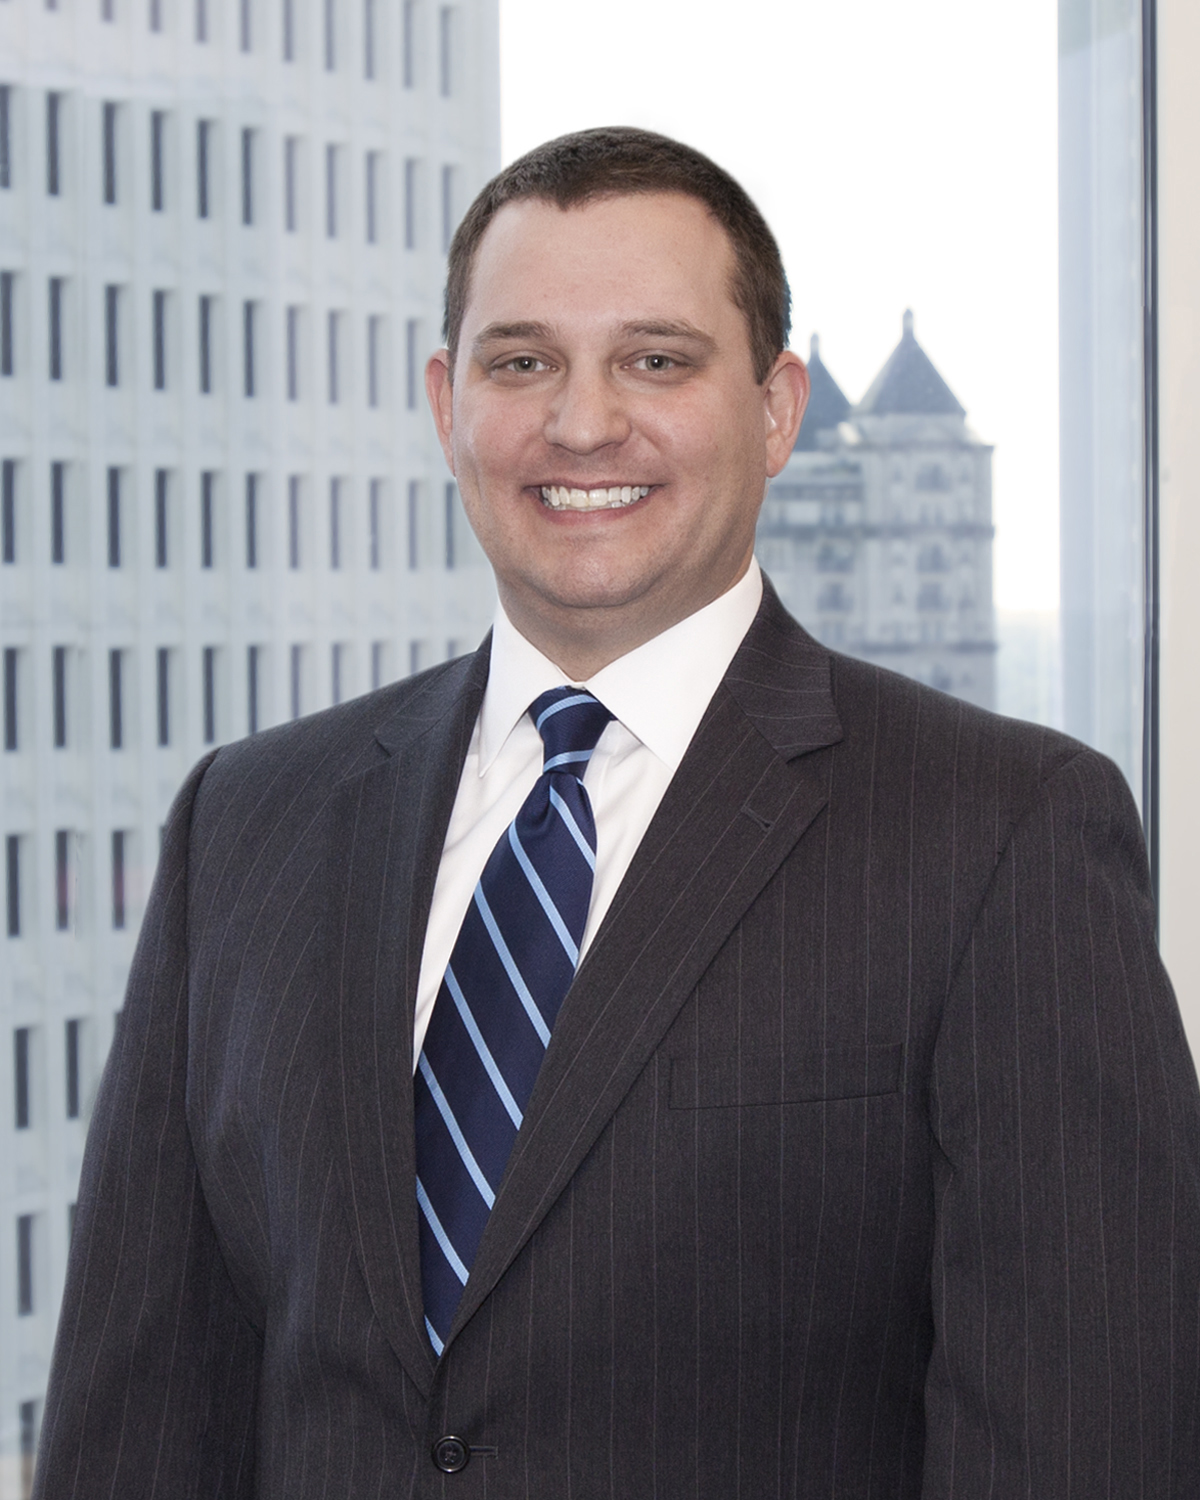 David Kincaid ('10) joins large Atlanta IP firm